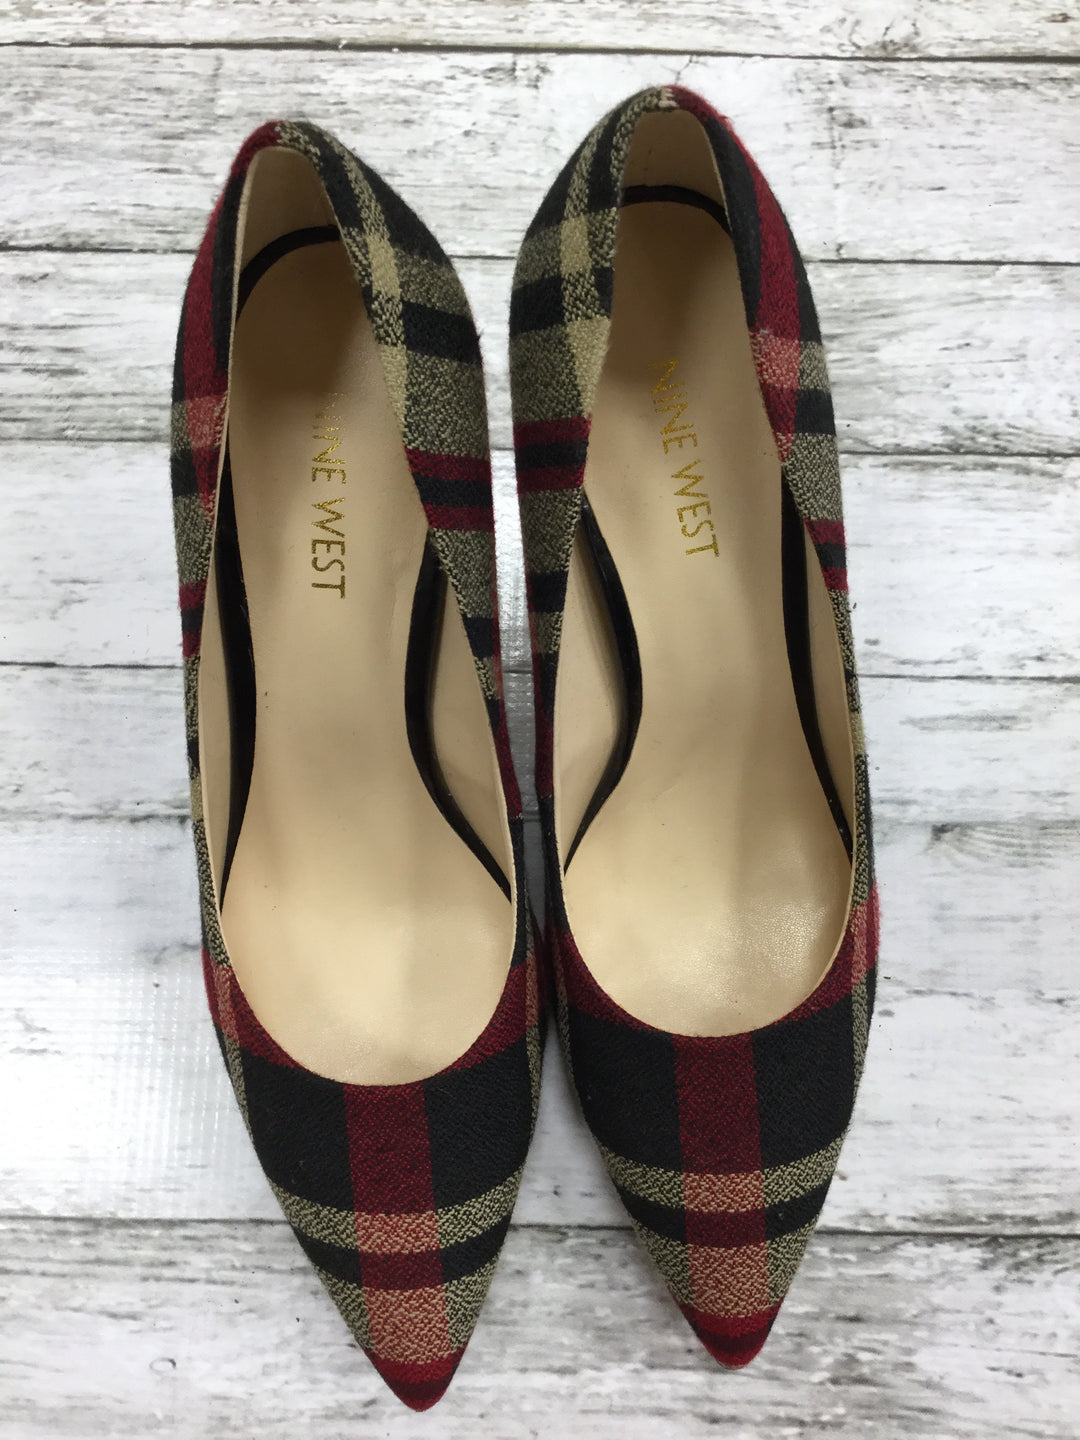 Primary Photo - BRAND: NINE WEST SHOES <BR>STYLE: SHOES LOW HEEL <BR>COLOR: PLAID <BR>SIZE: 7.5 <BR>SKU: 127-4876-5771